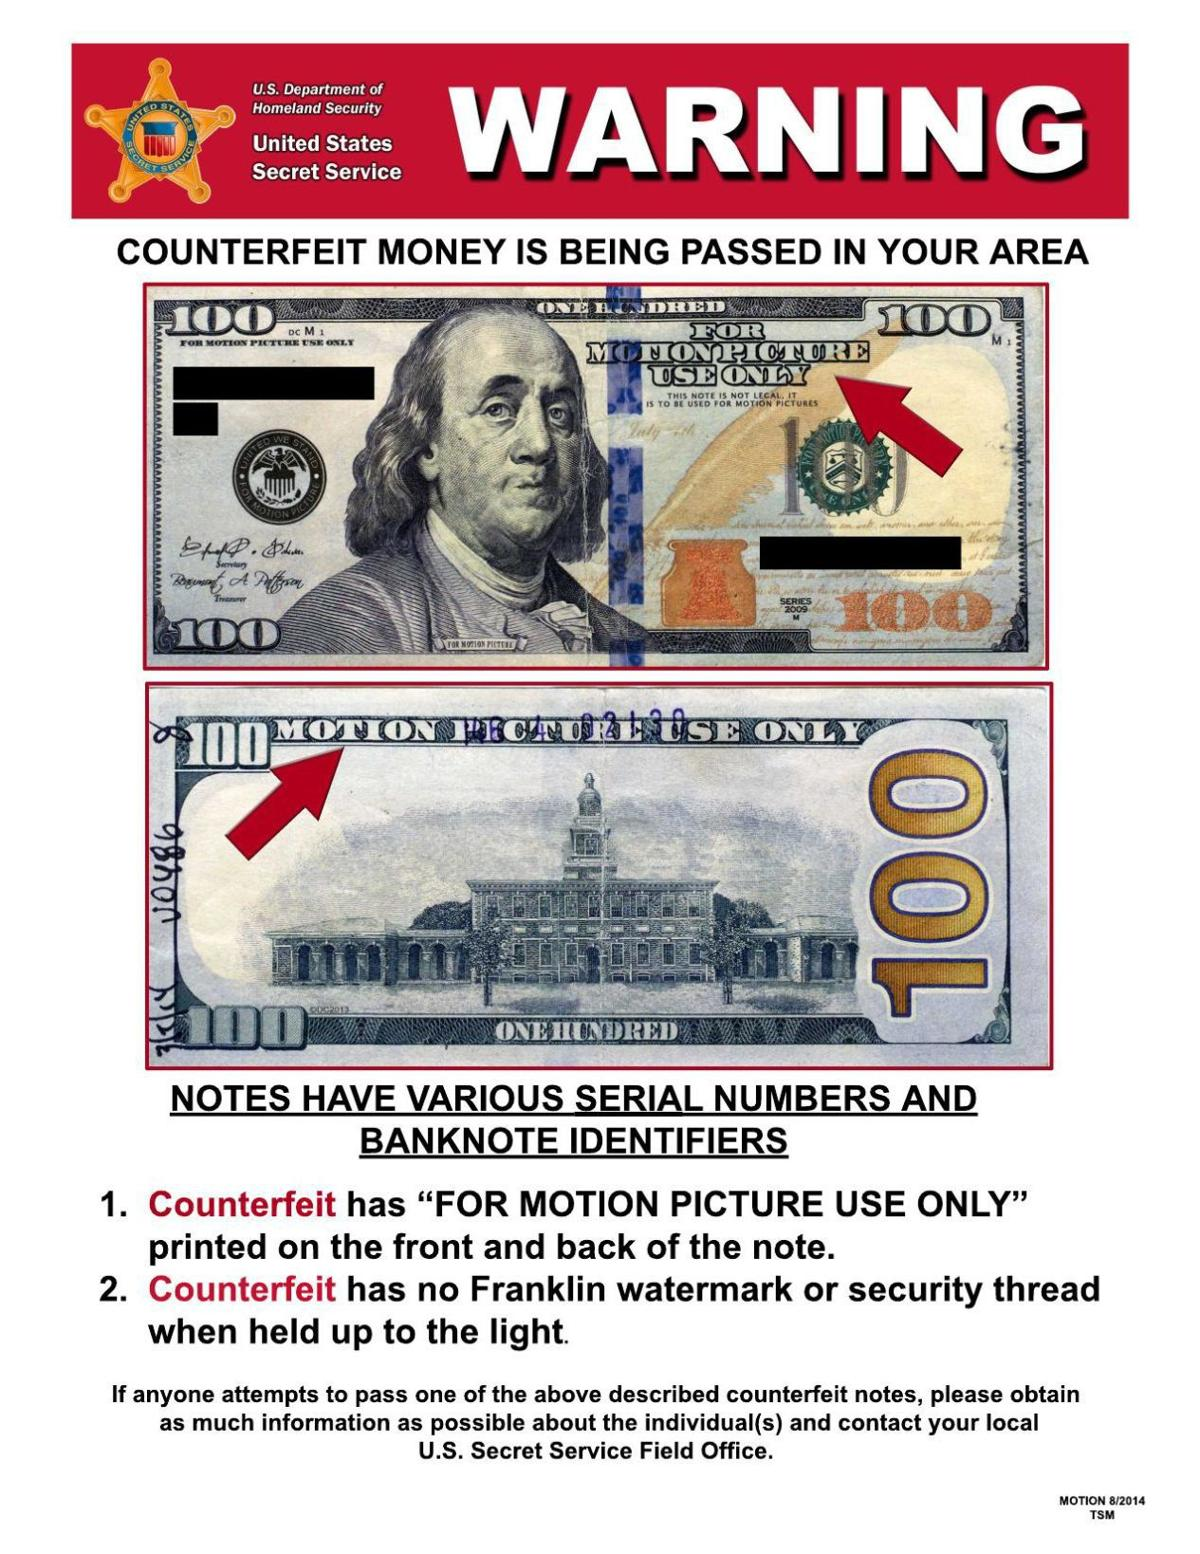 Counterfeit money is being passed in your area